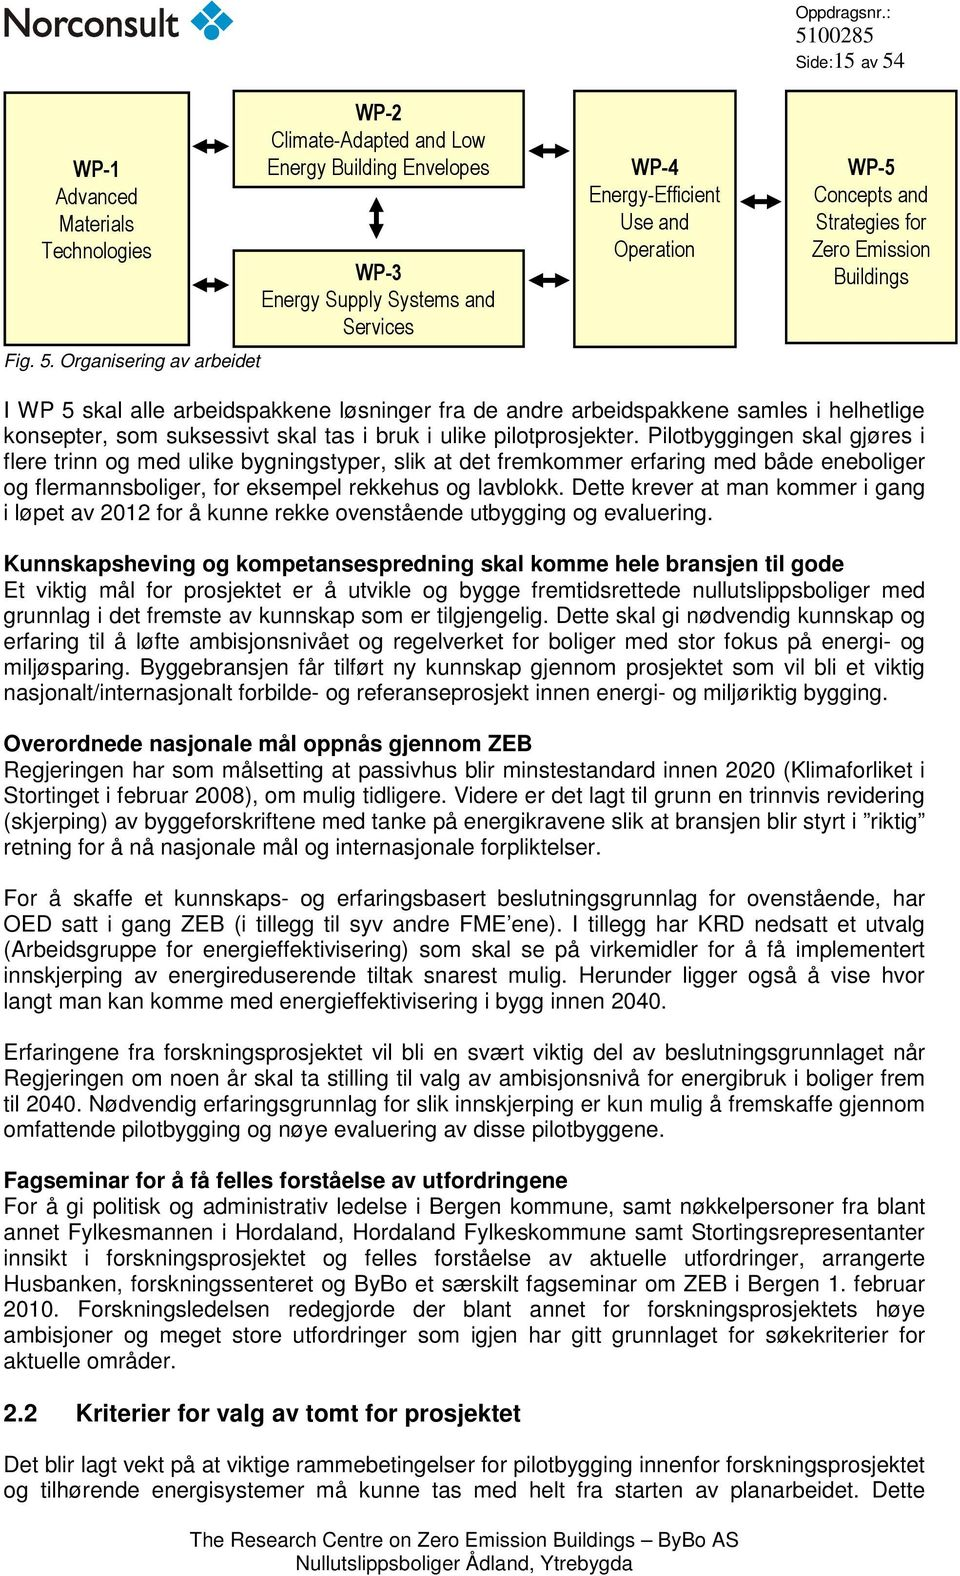 : Side:15 av 54 WP-5 Concepts and Strategies for Zero Emission Buildings I WP 5 skal alle arbeidspakkene løsninger fra de andre arbeidspakkene samles i helhetlige konsepter, som suksessivt skal tas i